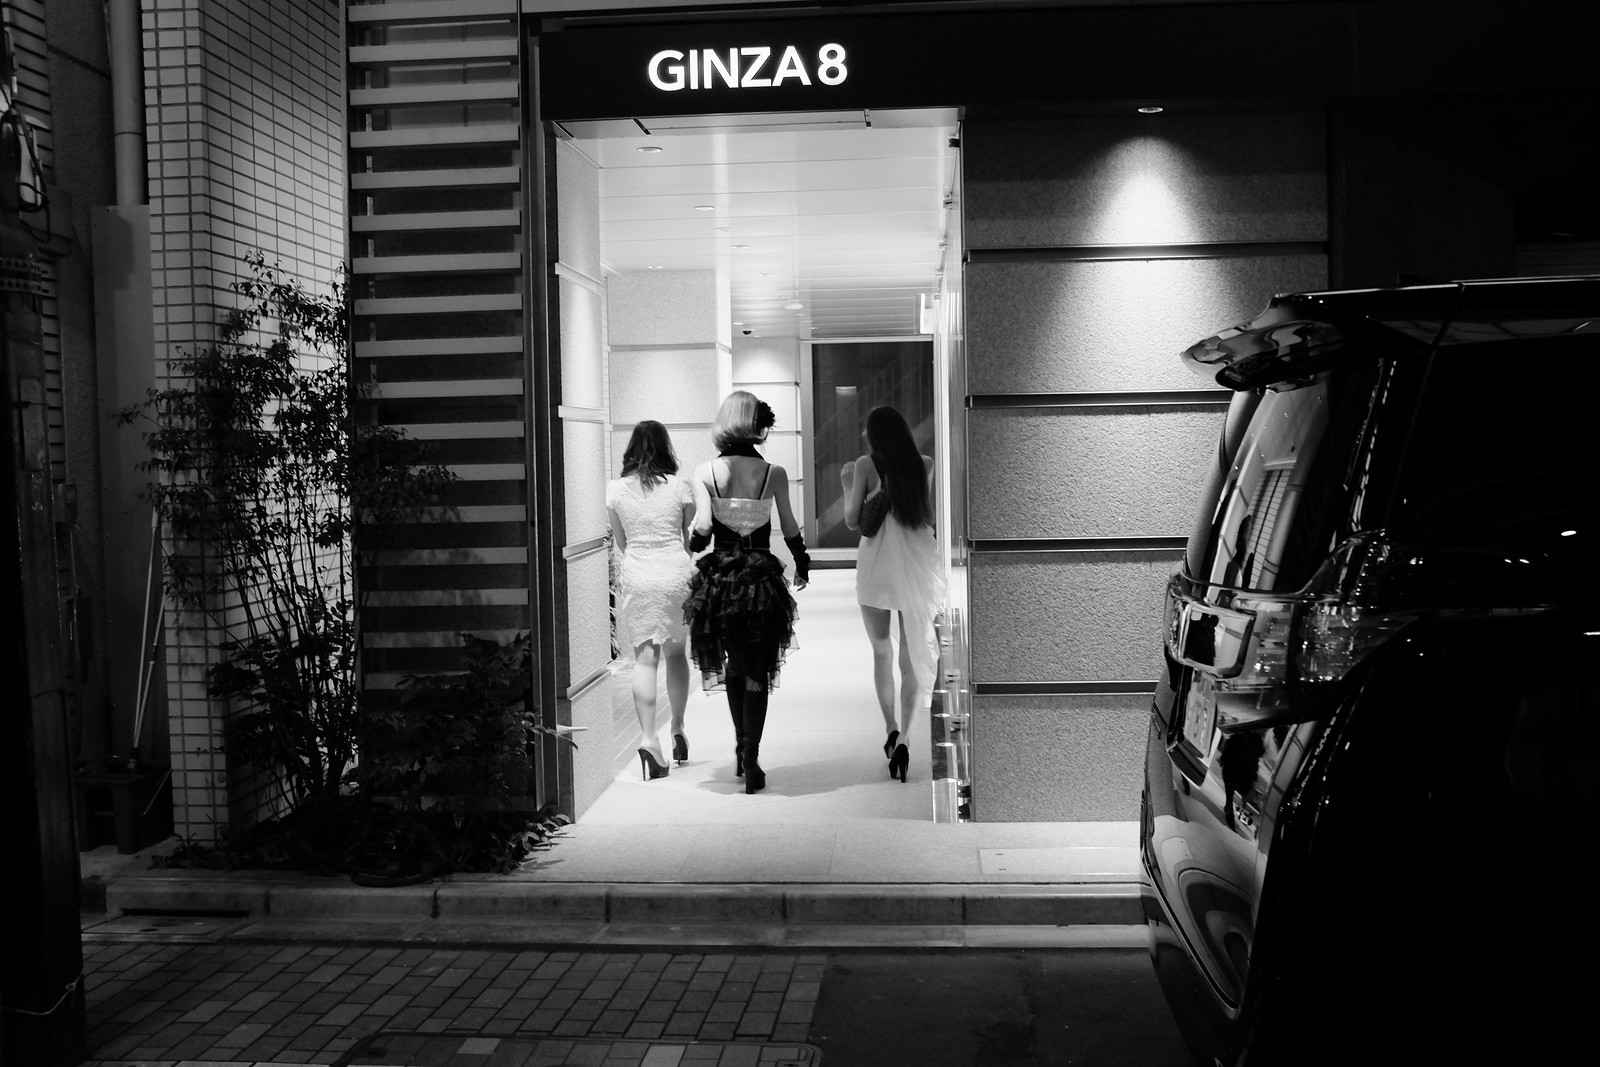 The Ginza night photos in Tokyo, Japan.